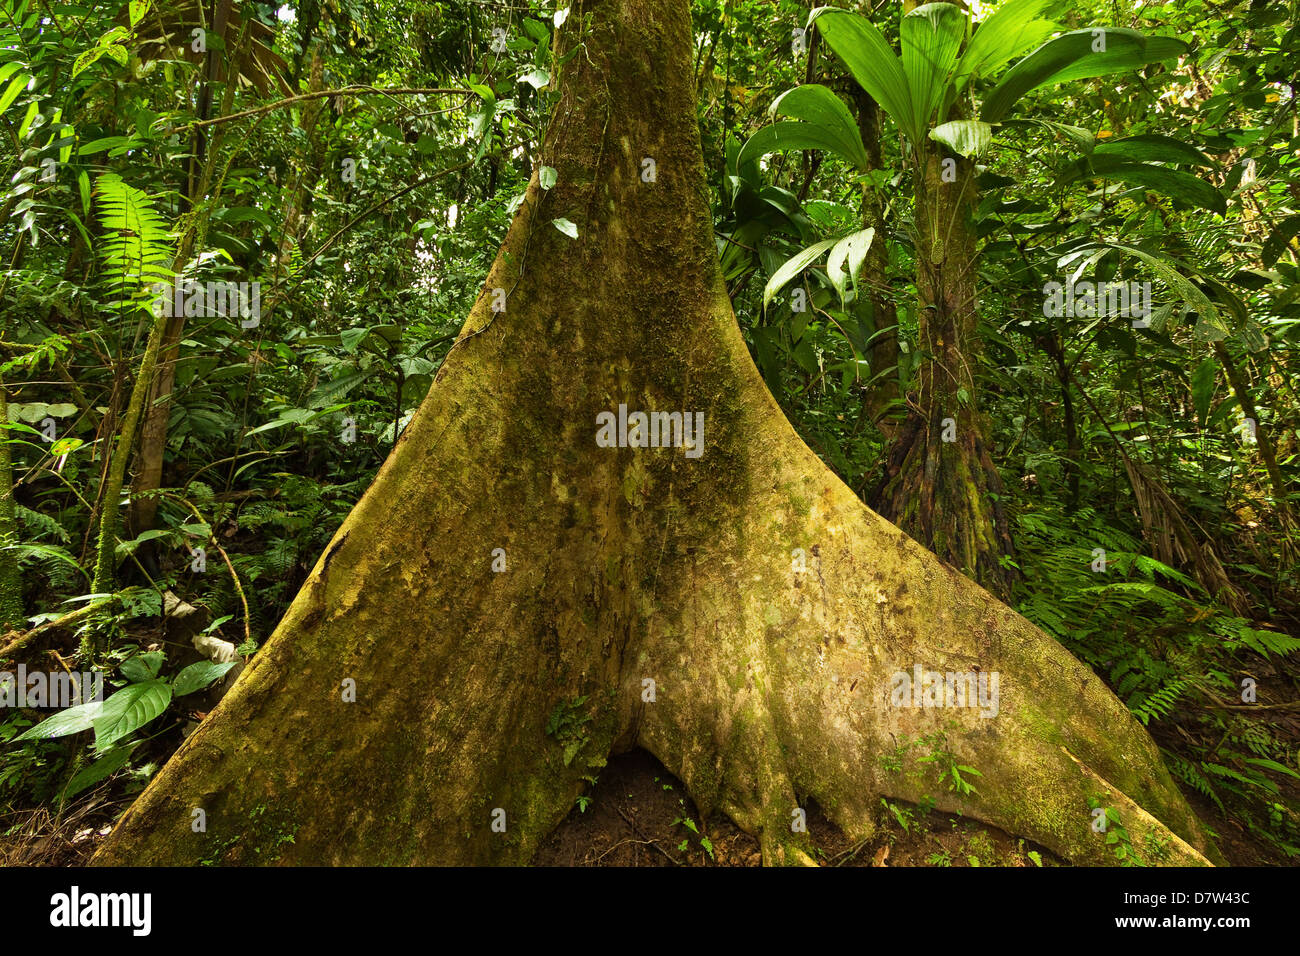 Buttress root in jungle at Arenal Hanging Bridges, La Fortuna, Alajuela Province, Costa Rica - Stock Image